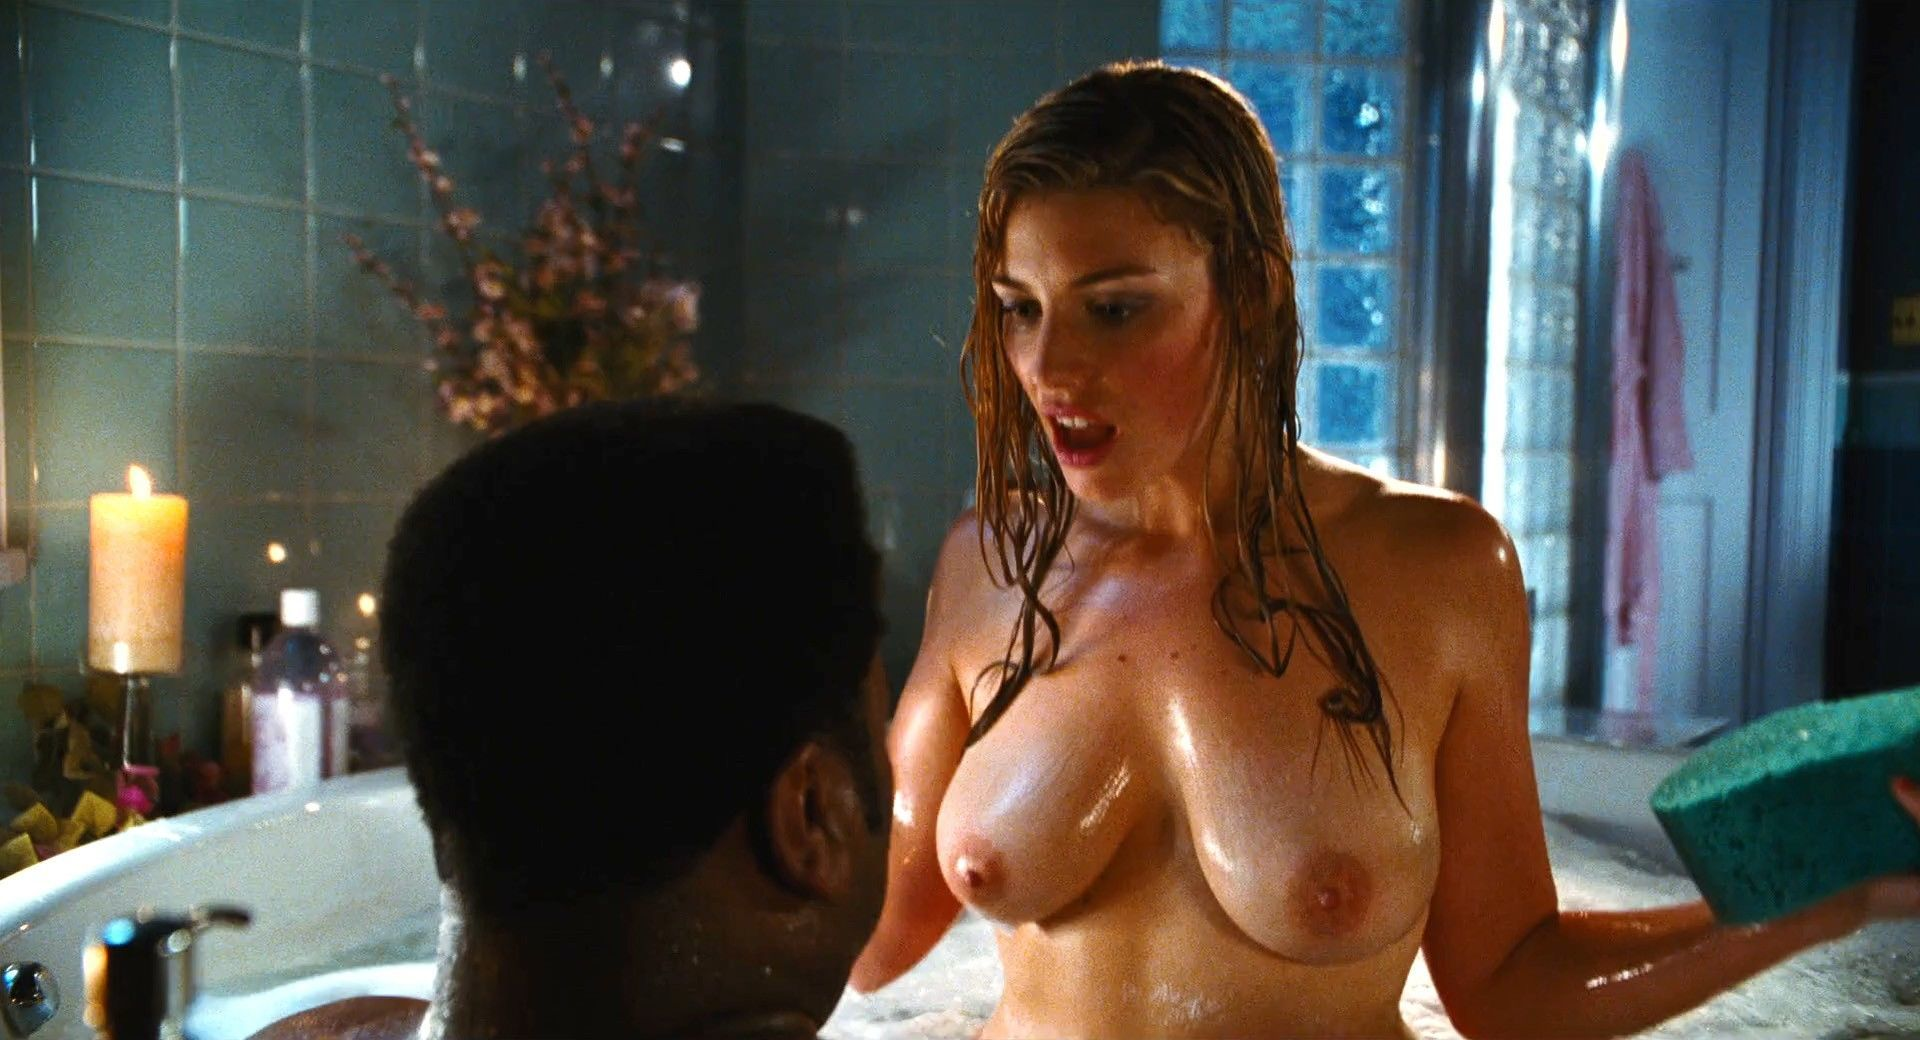 tang-movie-stars-nude-scenes-plump